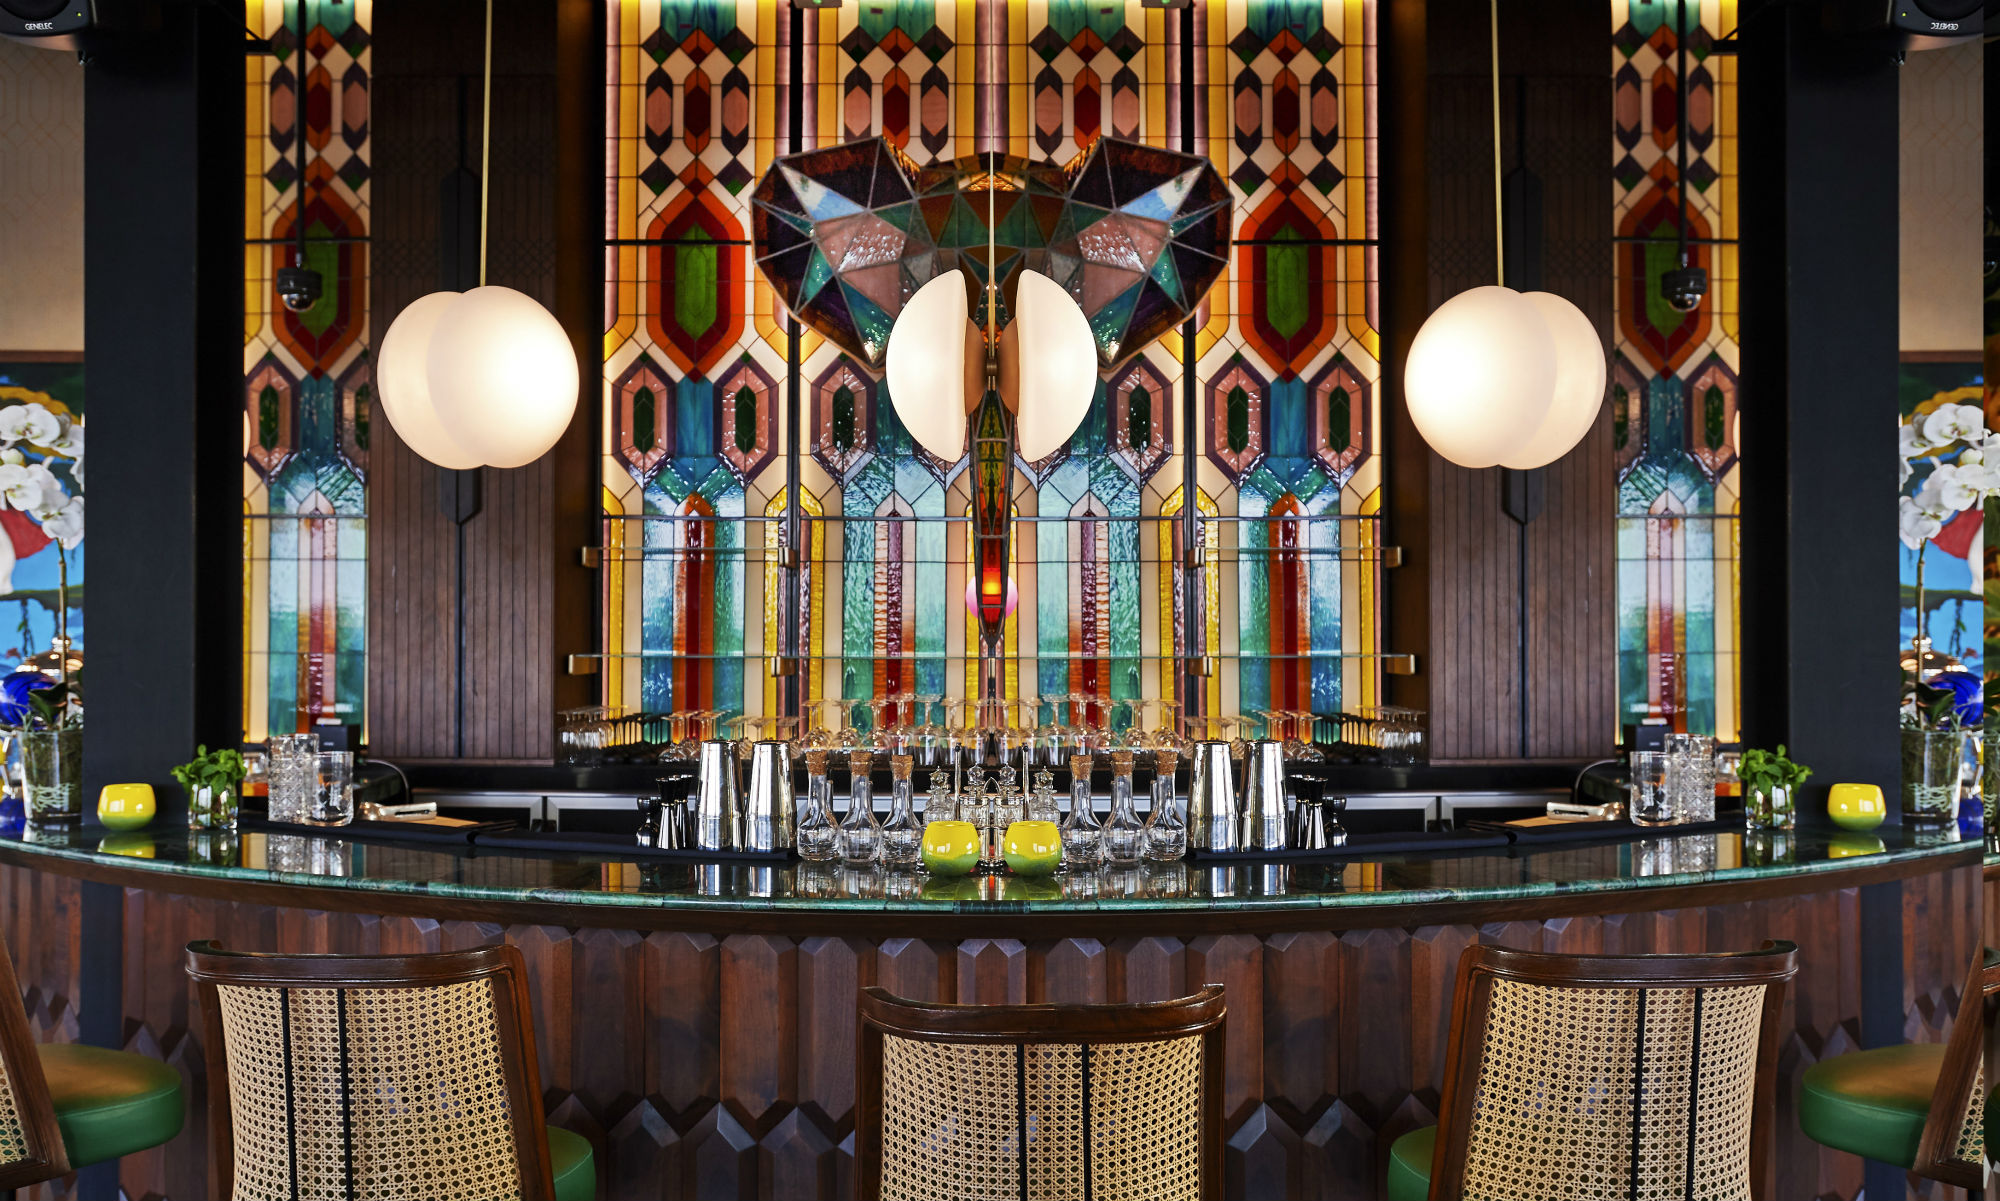 The stained glass elephant head that hangs over the bar at Masti is a stand out feature of the interior decor